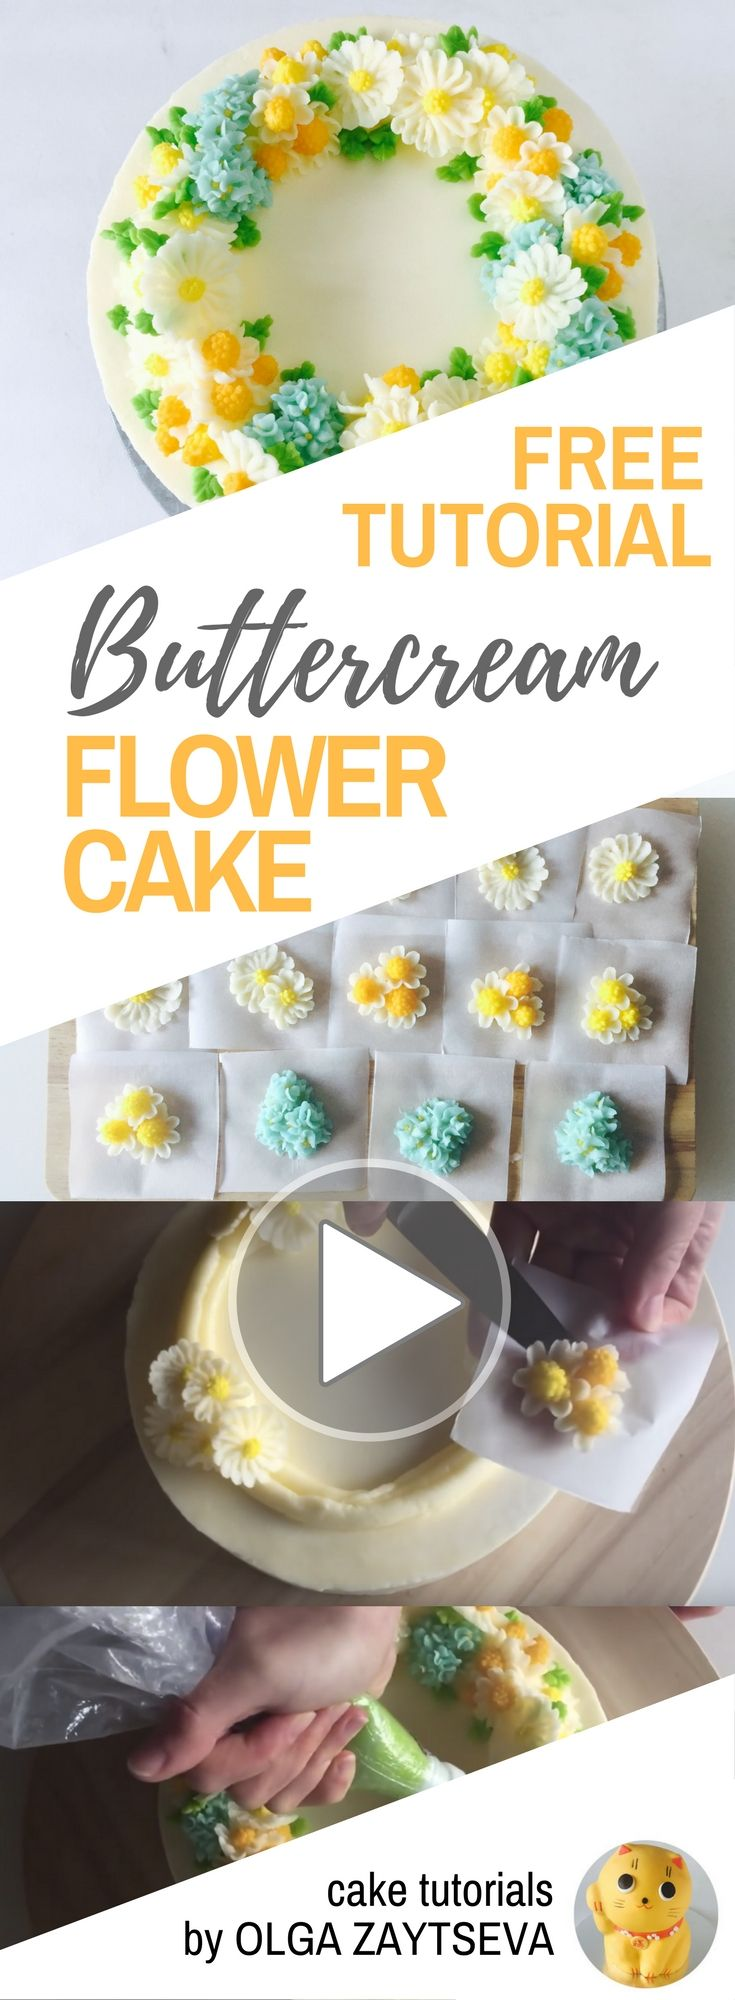 HOT CAKE TRENDS How to make Buttercream Camomile Flower Wreath cake - Cake decorating tutorial by Olga Zaytseva. Learn how to pipe tiny camomiles and hydrangeas and assemble a buttercream flower wreath cake.